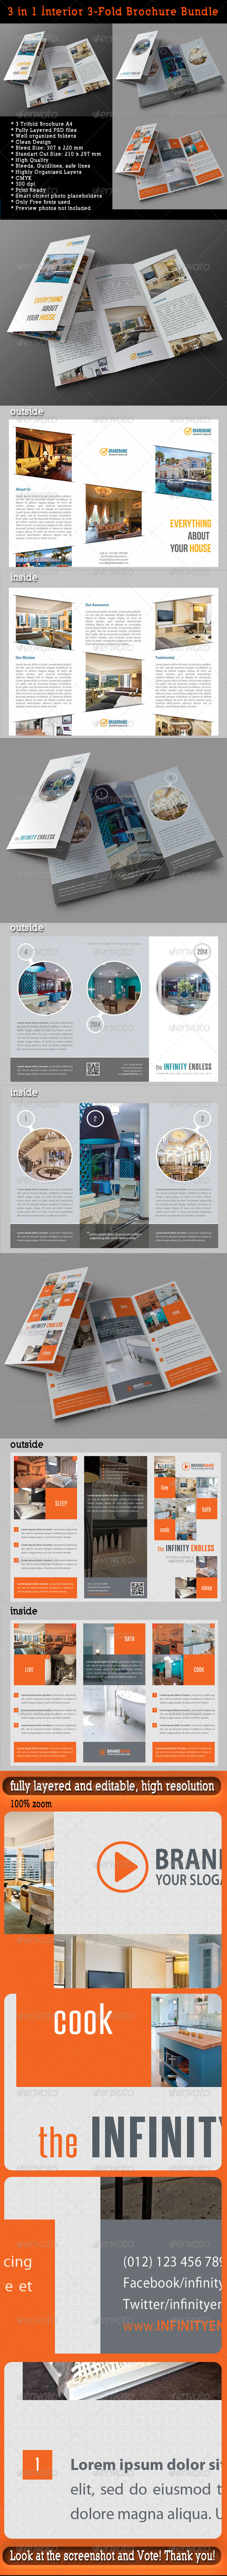 GraphicRiver 3 in 1 Interior 3-Fold Brochure Bundle 01 7608837